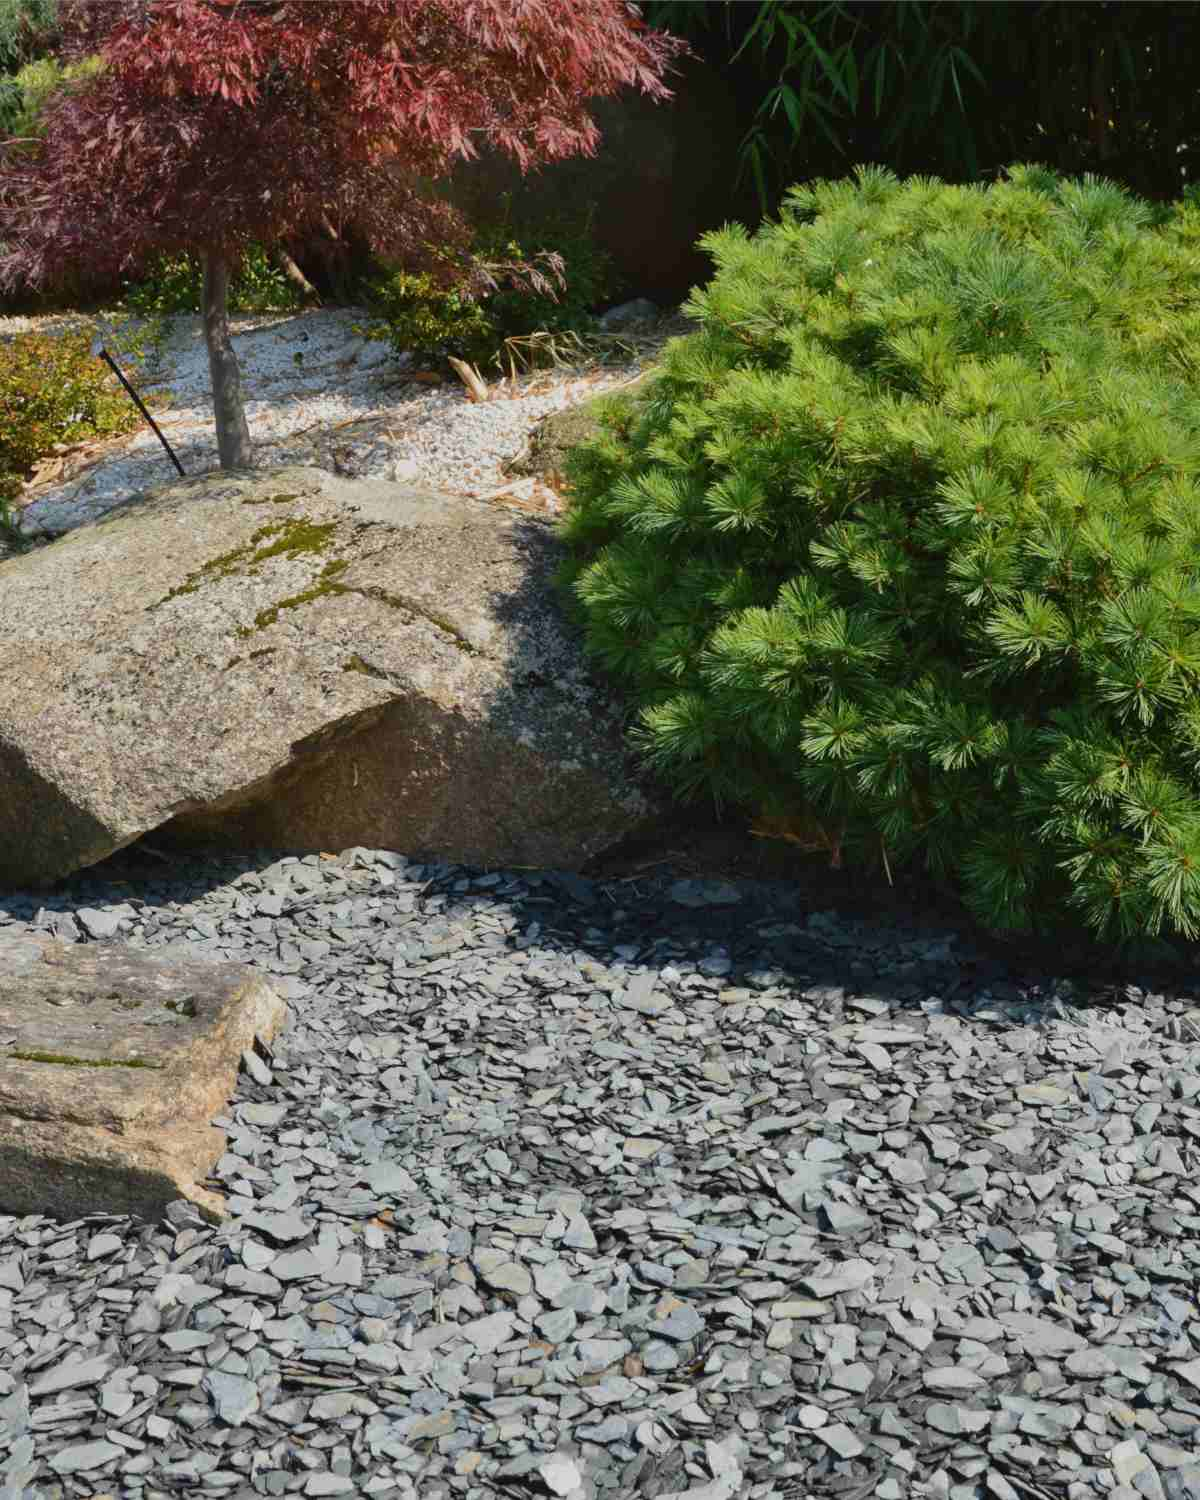 Slate mulch, perfect for acid-loving plants and shrubs